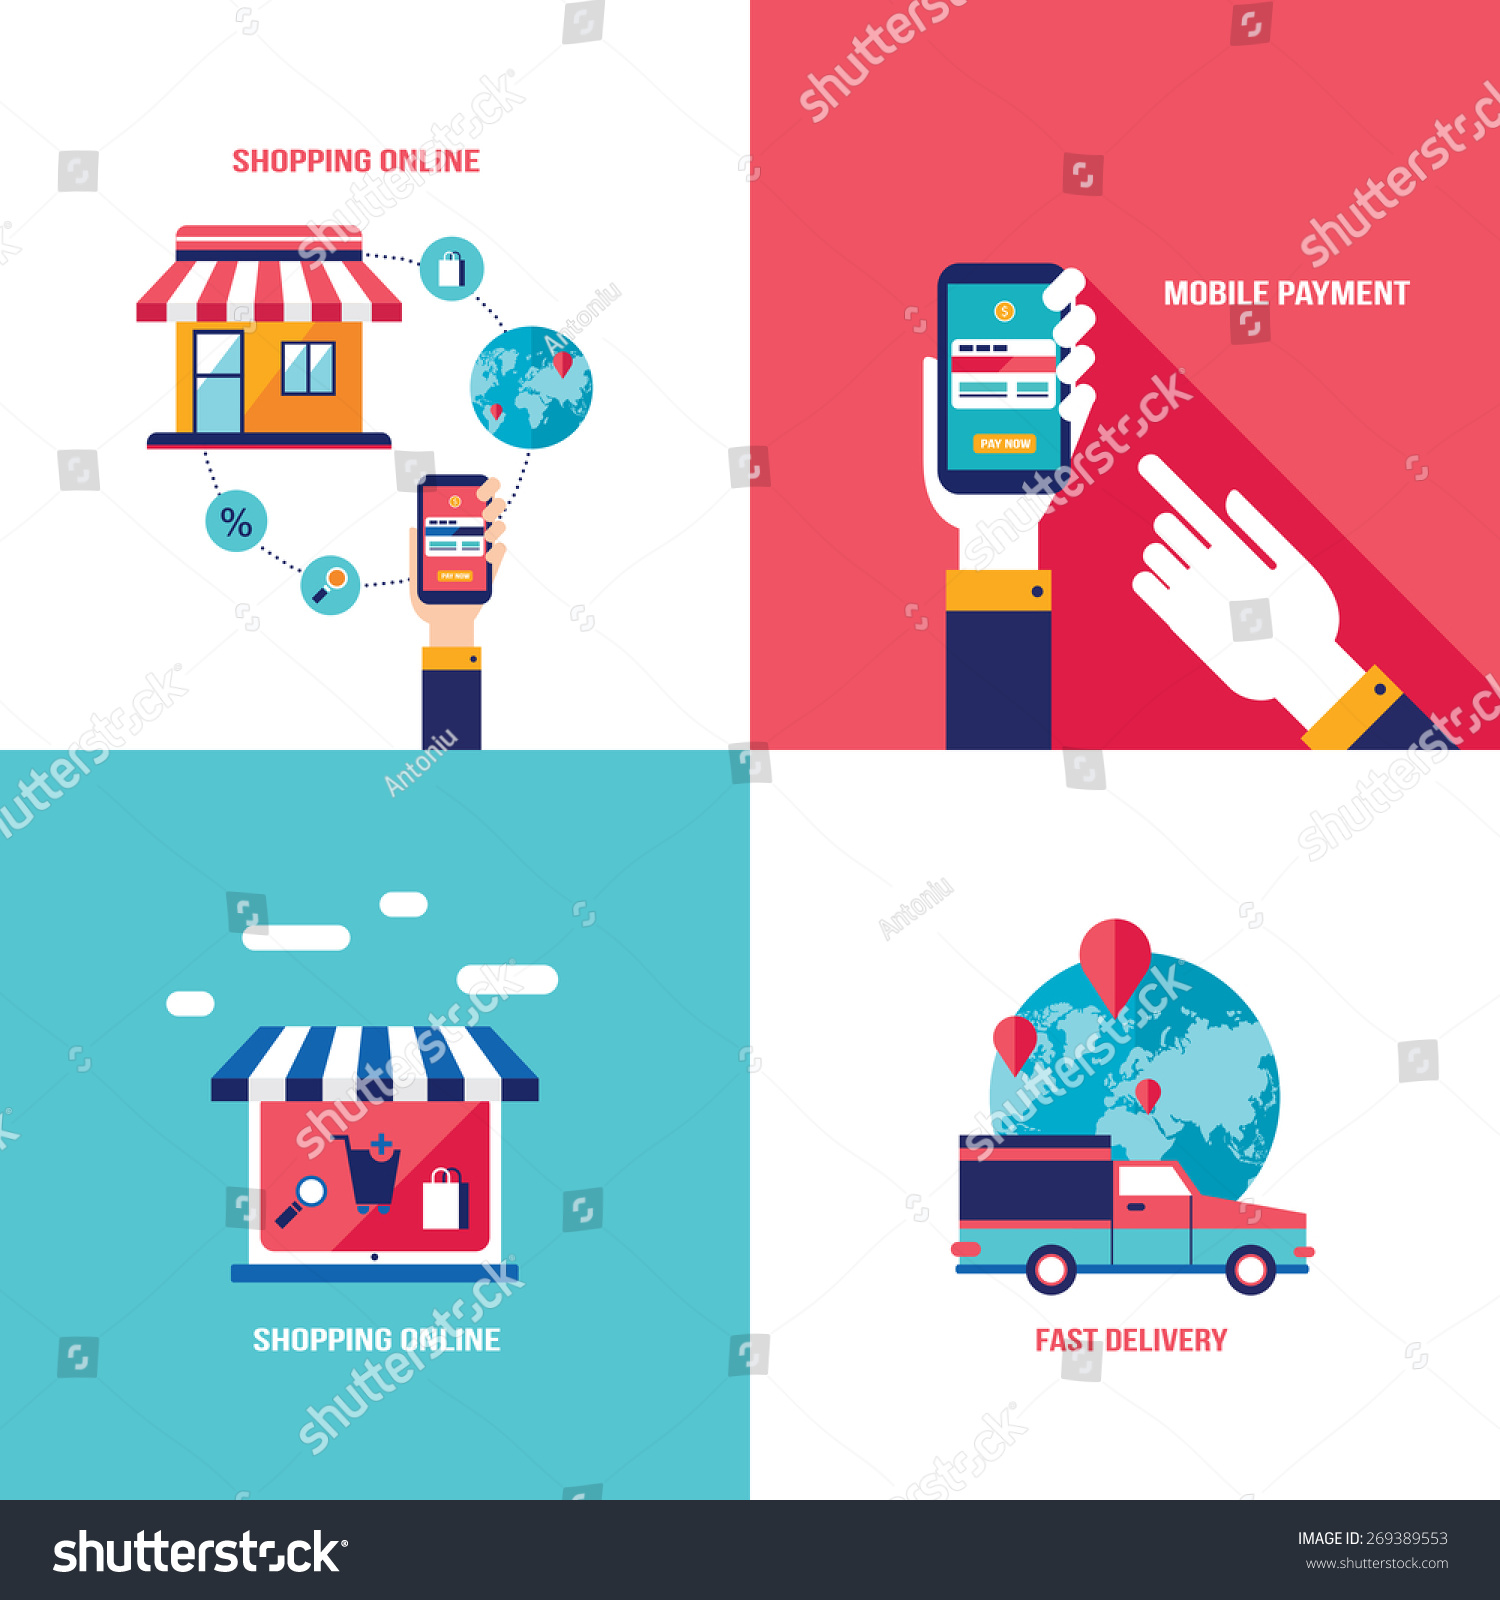 Online shopping e commerce mobile payment and successful for E commerce mobili